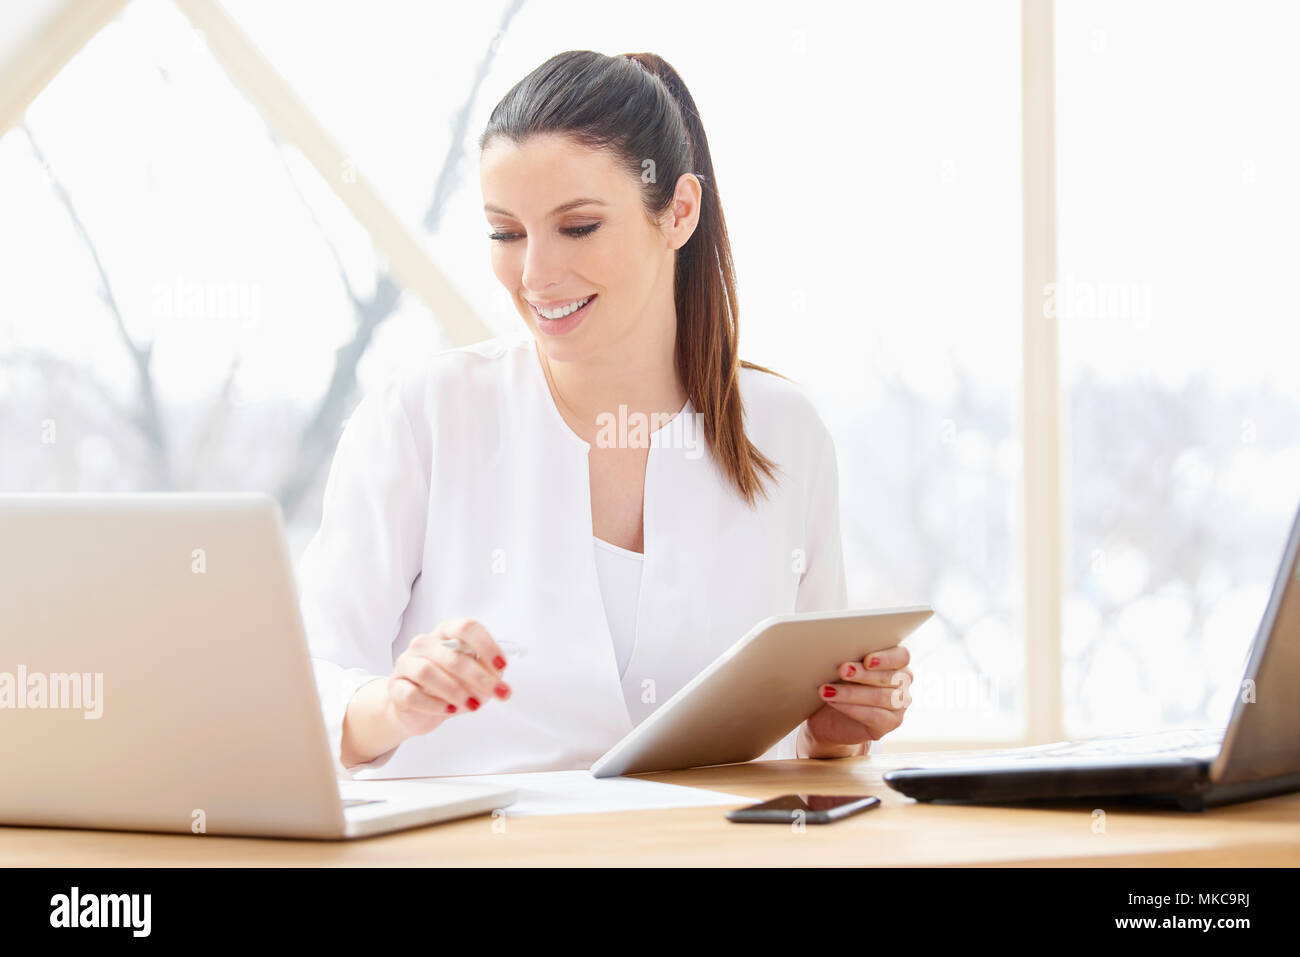 Portrait of attractive young businesswoman using digital tablet et l'ordinateur au bureau. Banque D'Images